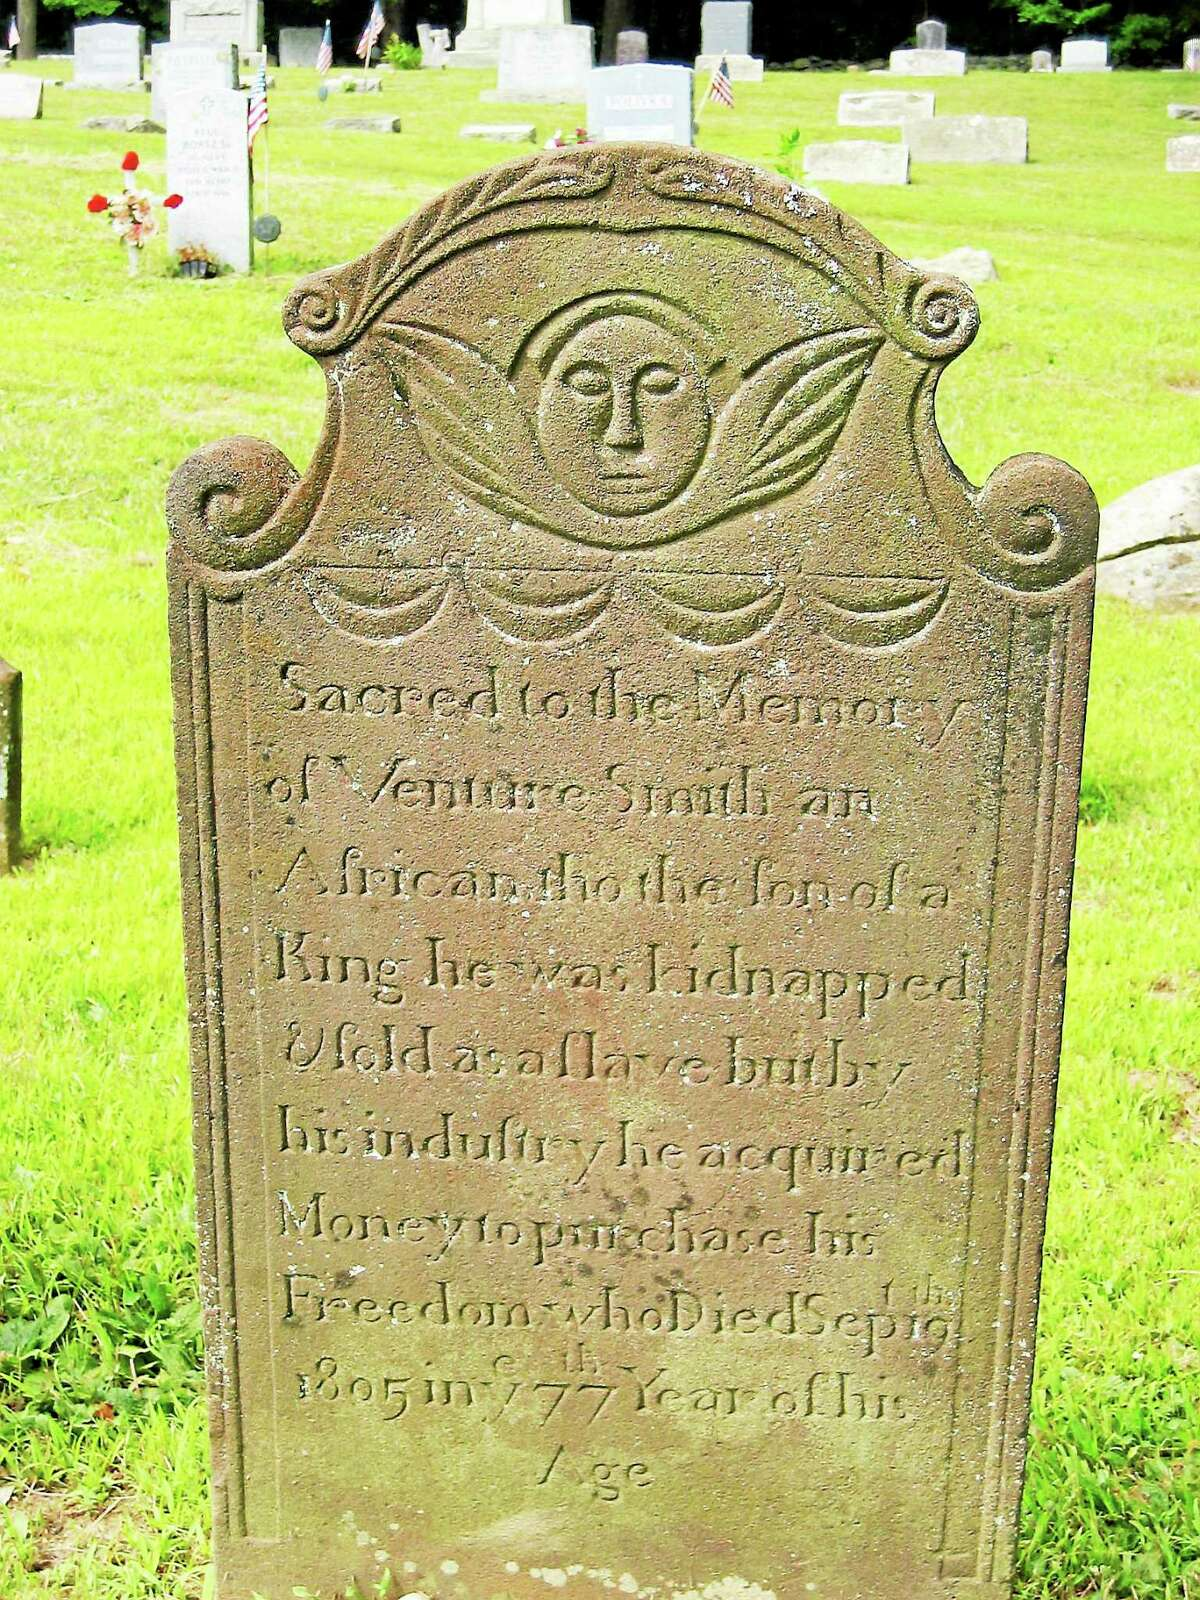 The tombstone of Venture Smith is seen in the cemetery of the First Church of East Haddam. Smith was a former slave who bought freedom for himself and his family and built a thriving shipping business on the Connecticut River and owned a 100-acre farm on Haddam Neck.